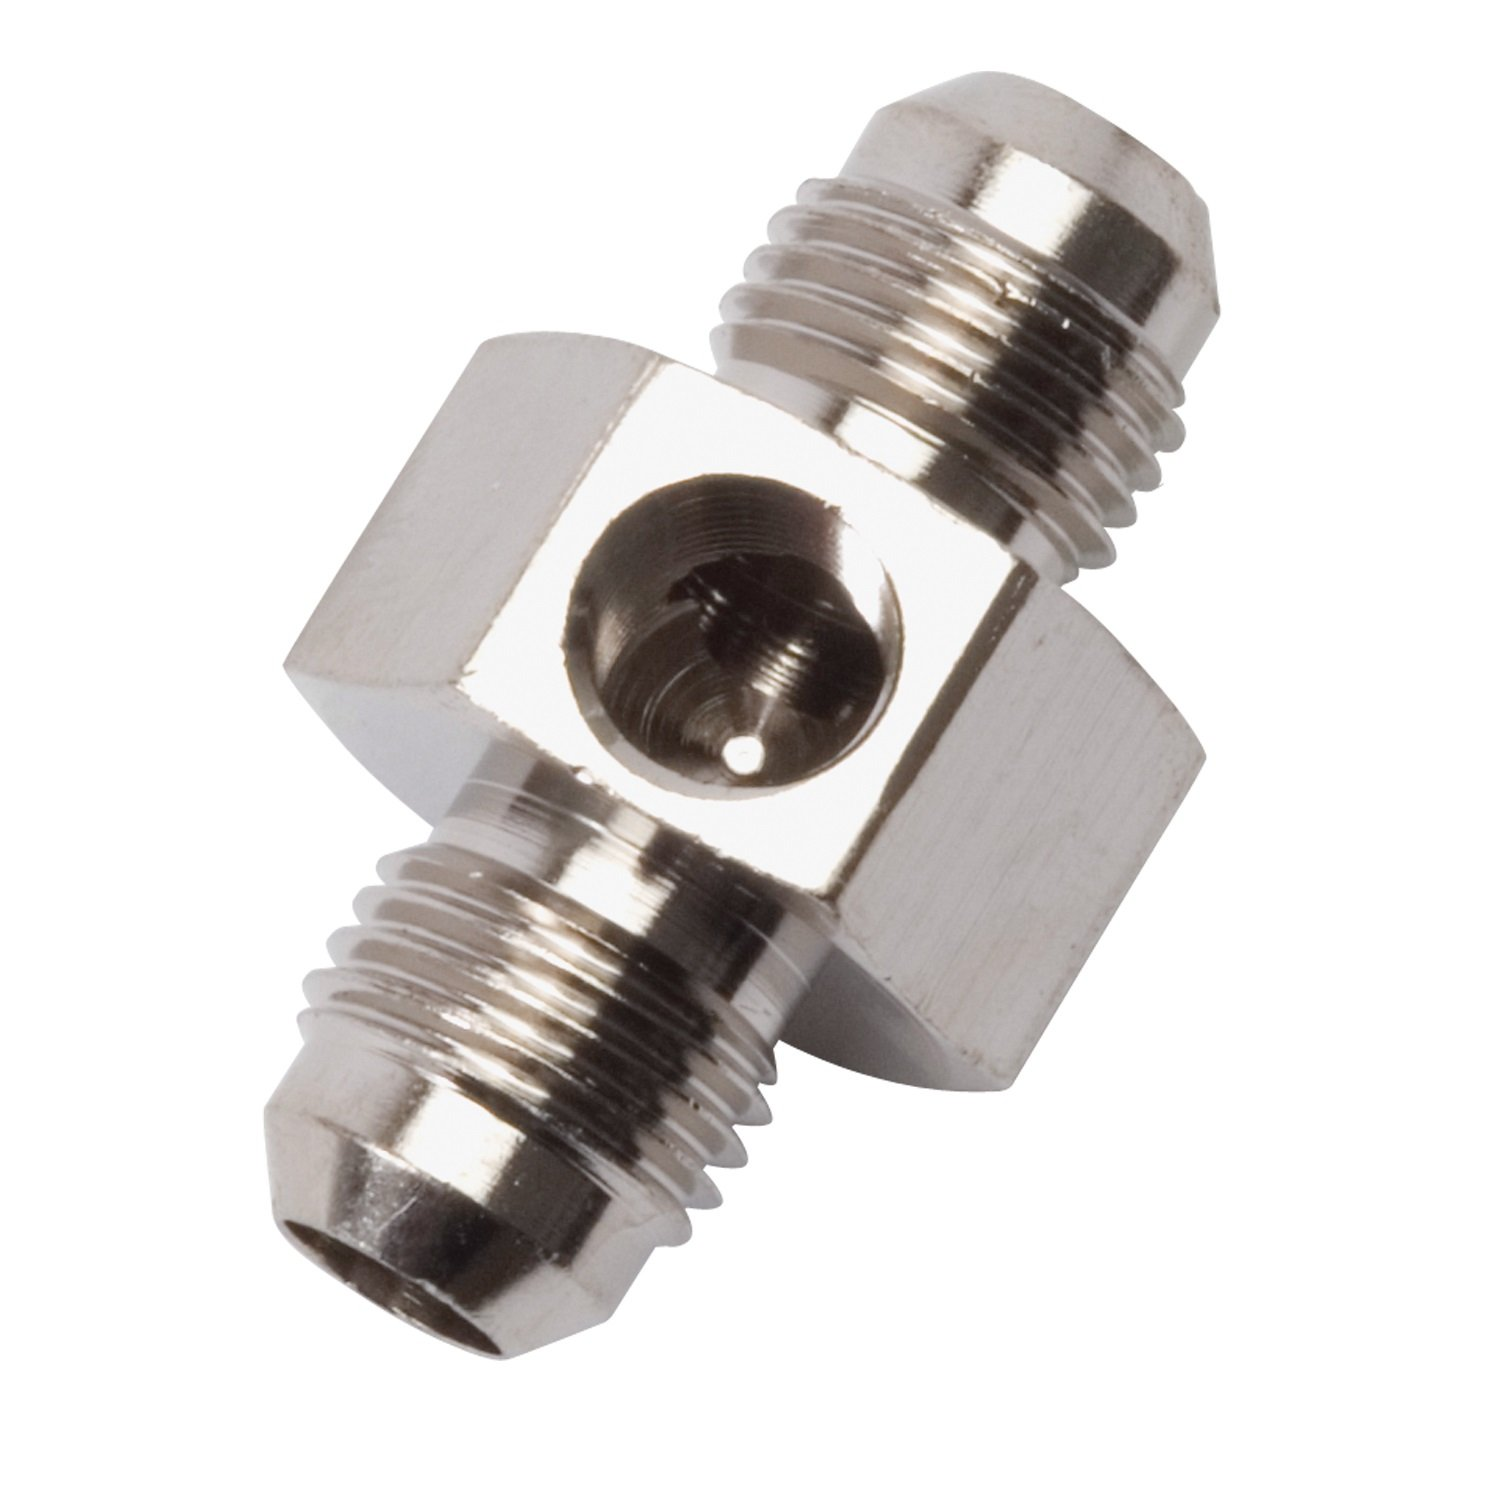 Russell 670001 Endura 6AN Flare Union Pressure Adapter